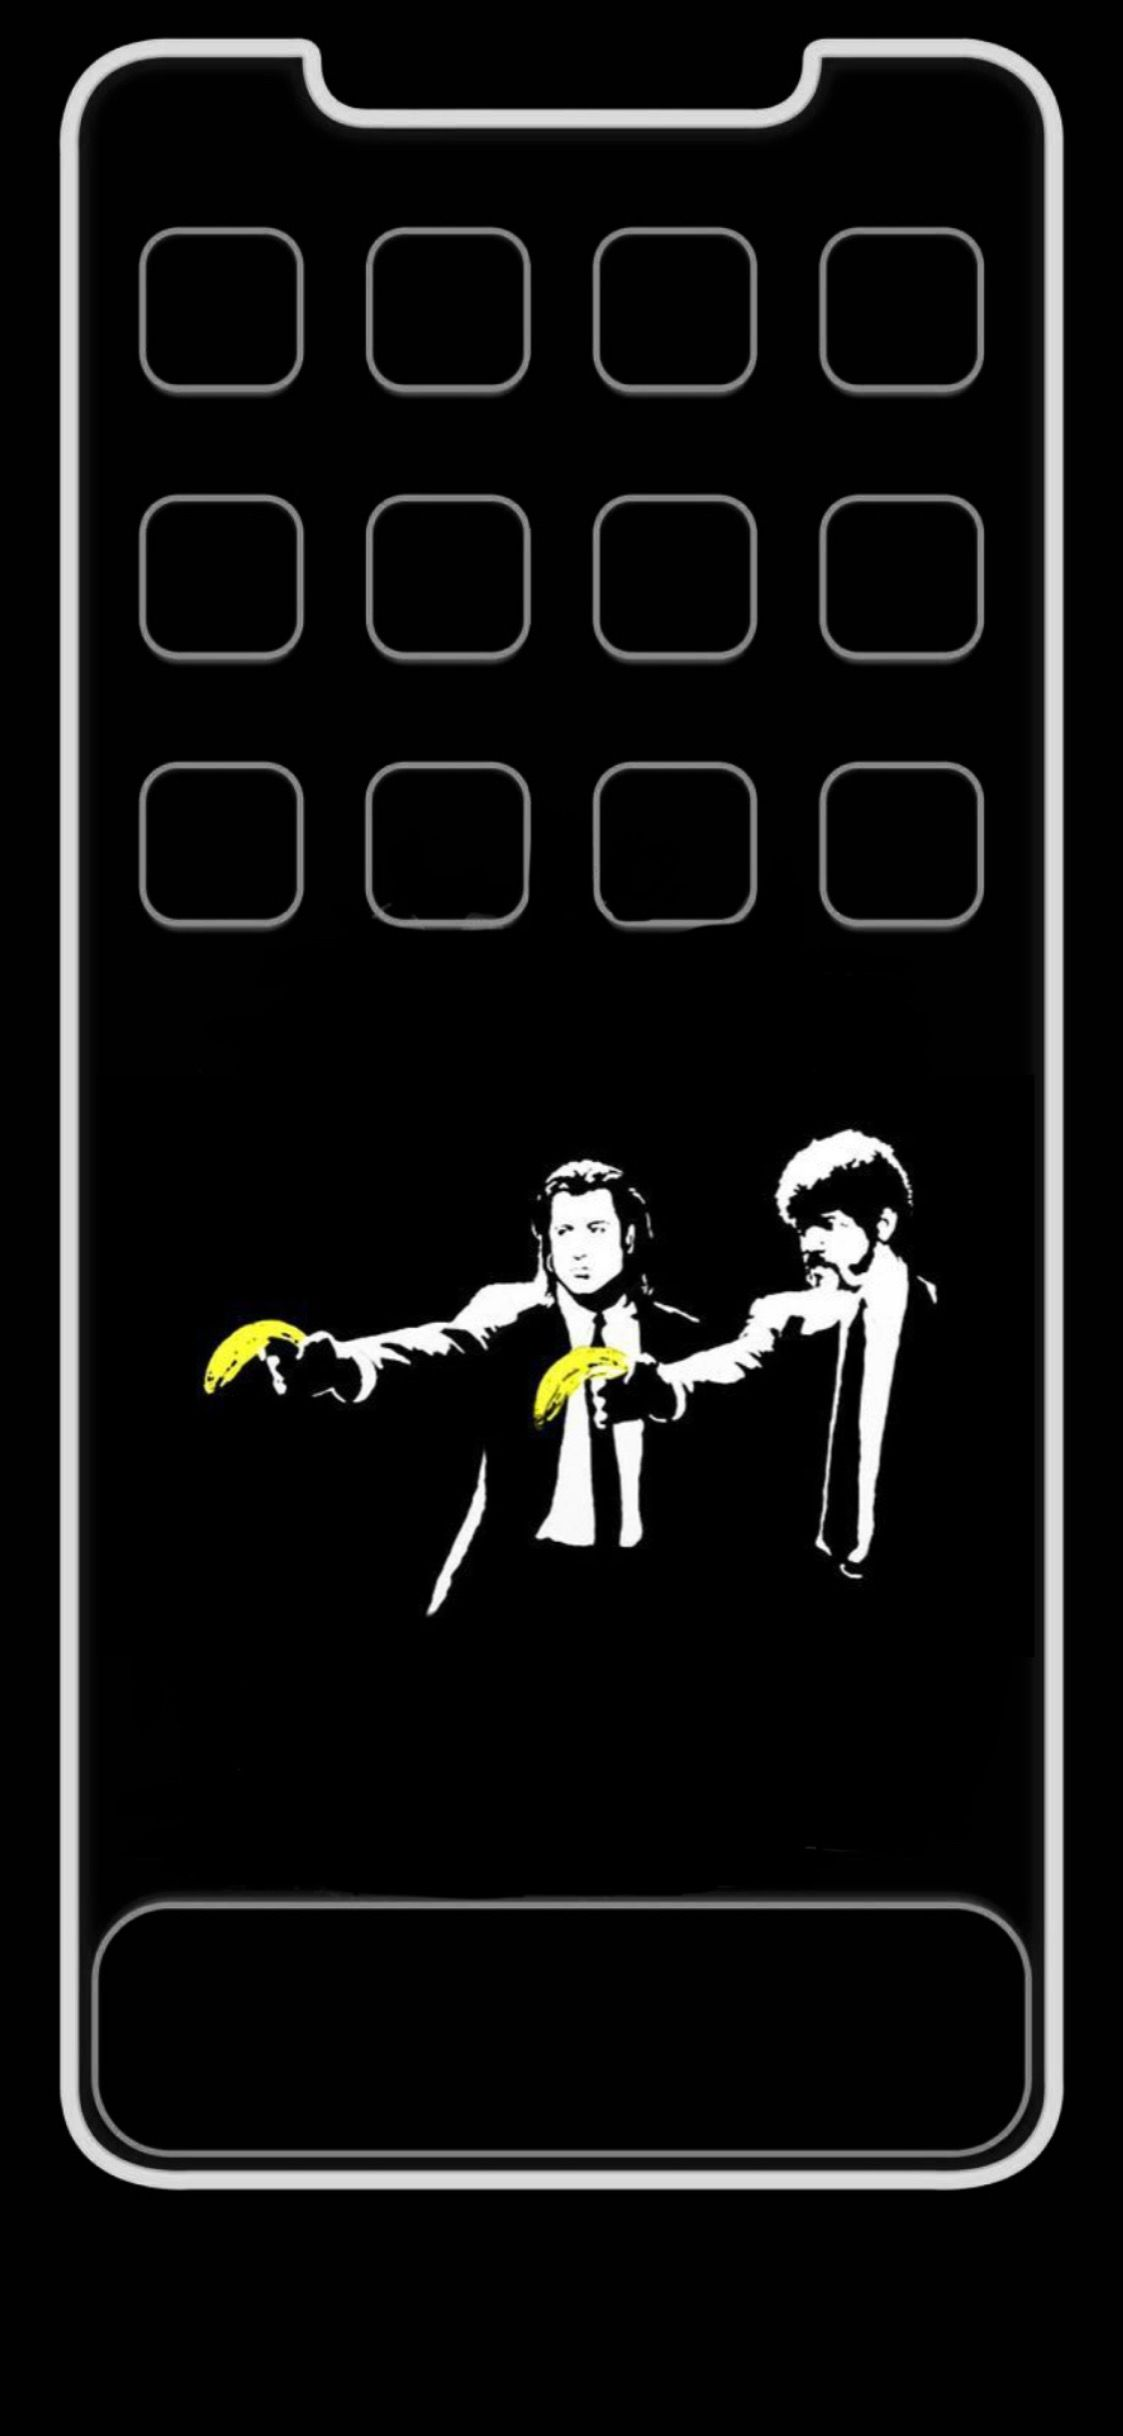 Pulp Fiction Dance Scene Google Search In 2020 Pulp Fiction Movie Artwork Movie Posters Minimalist